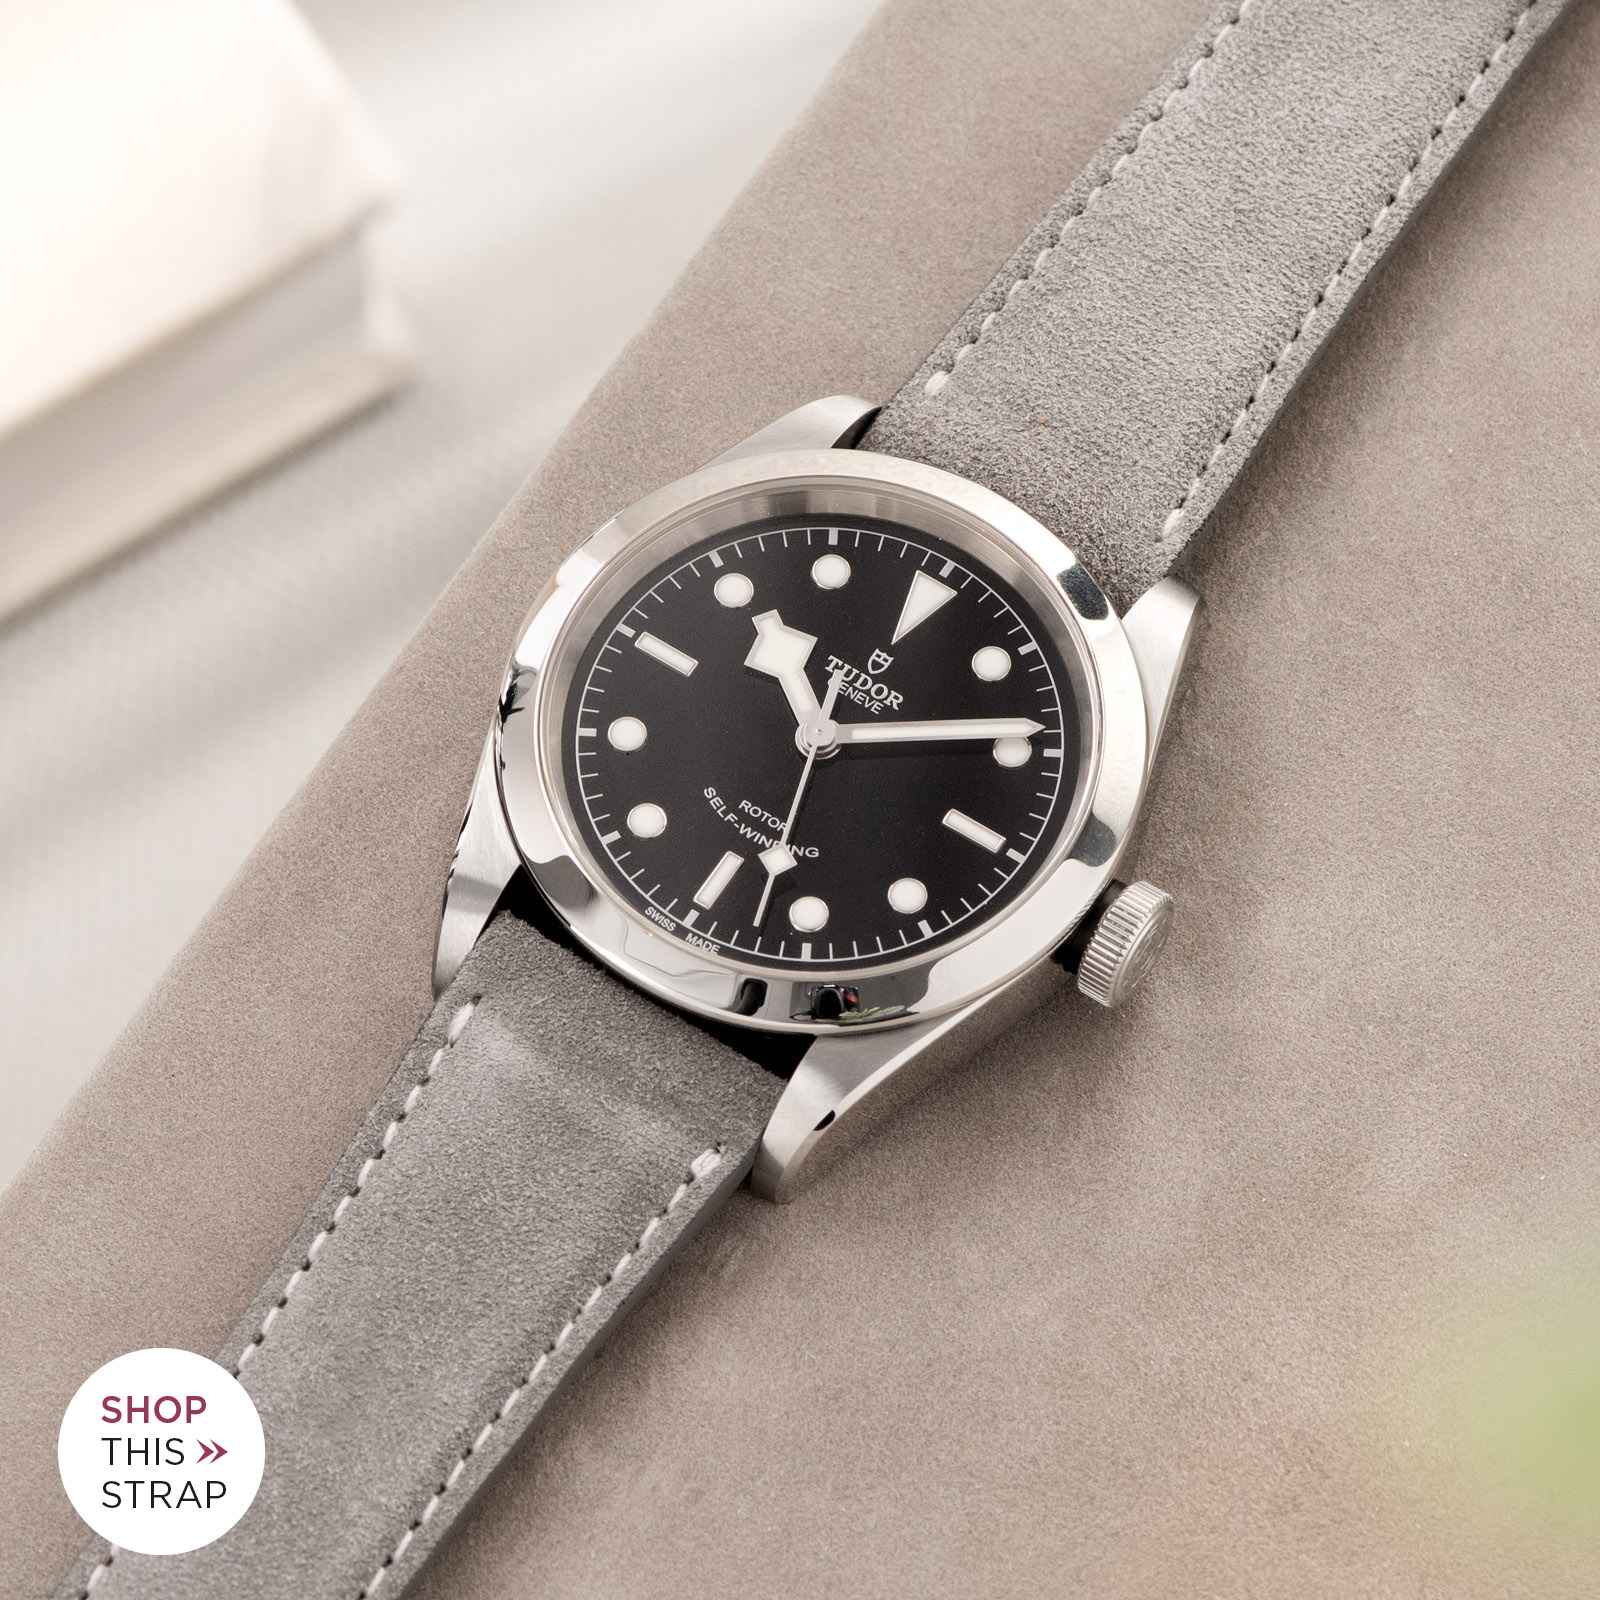 Bulang and Sons_Strap Guide_Tudor Heritage BlackBay 411_Harbor Grey Silky Suede Leather Watch Strap